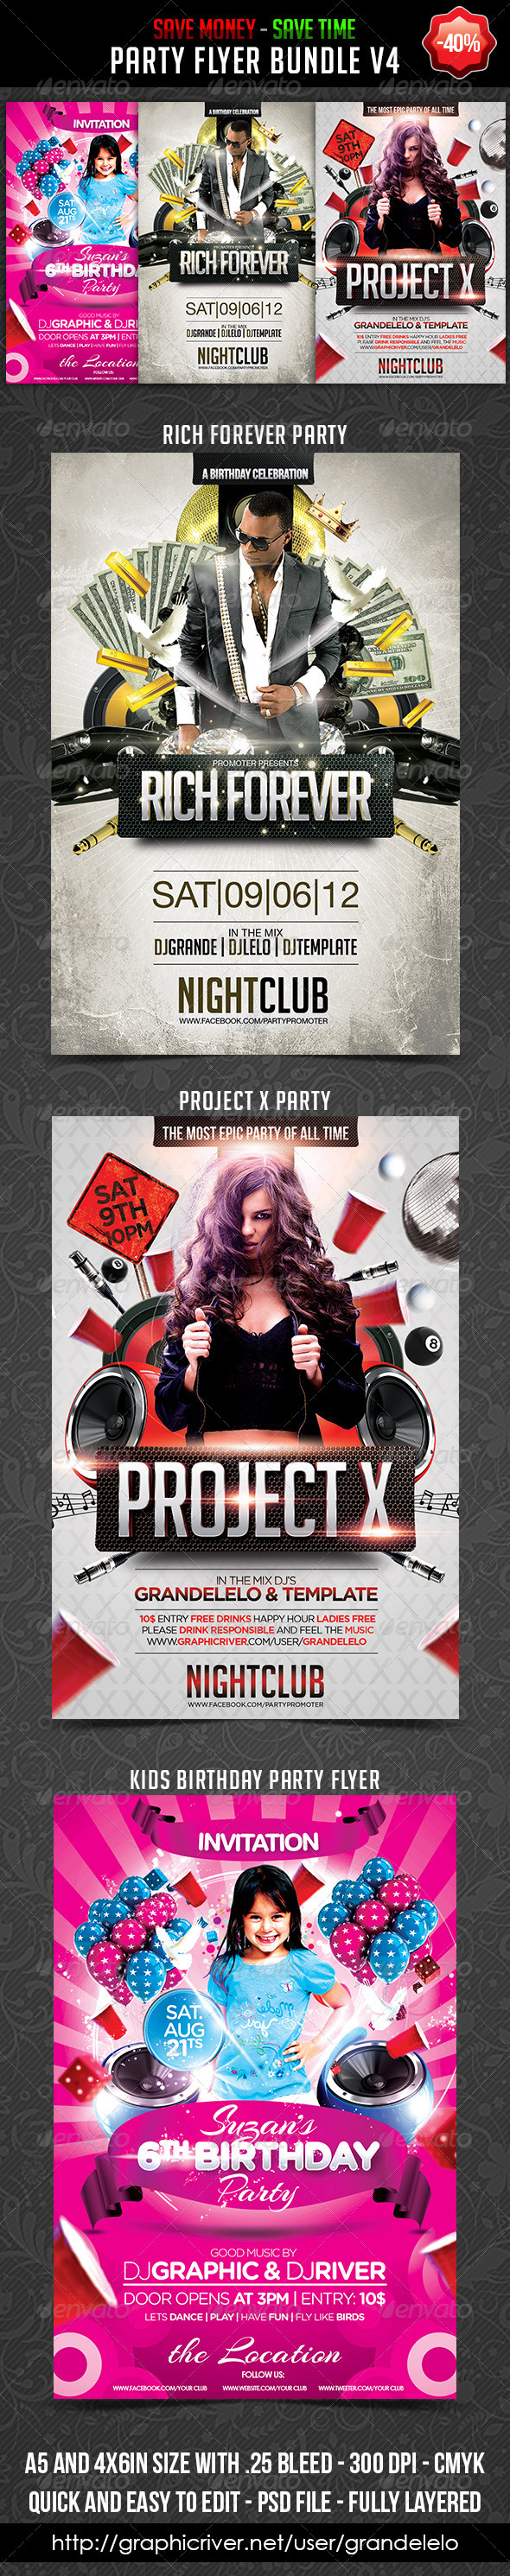 Party Flyer Bundle V4 by Grandelelo - Events Flyers